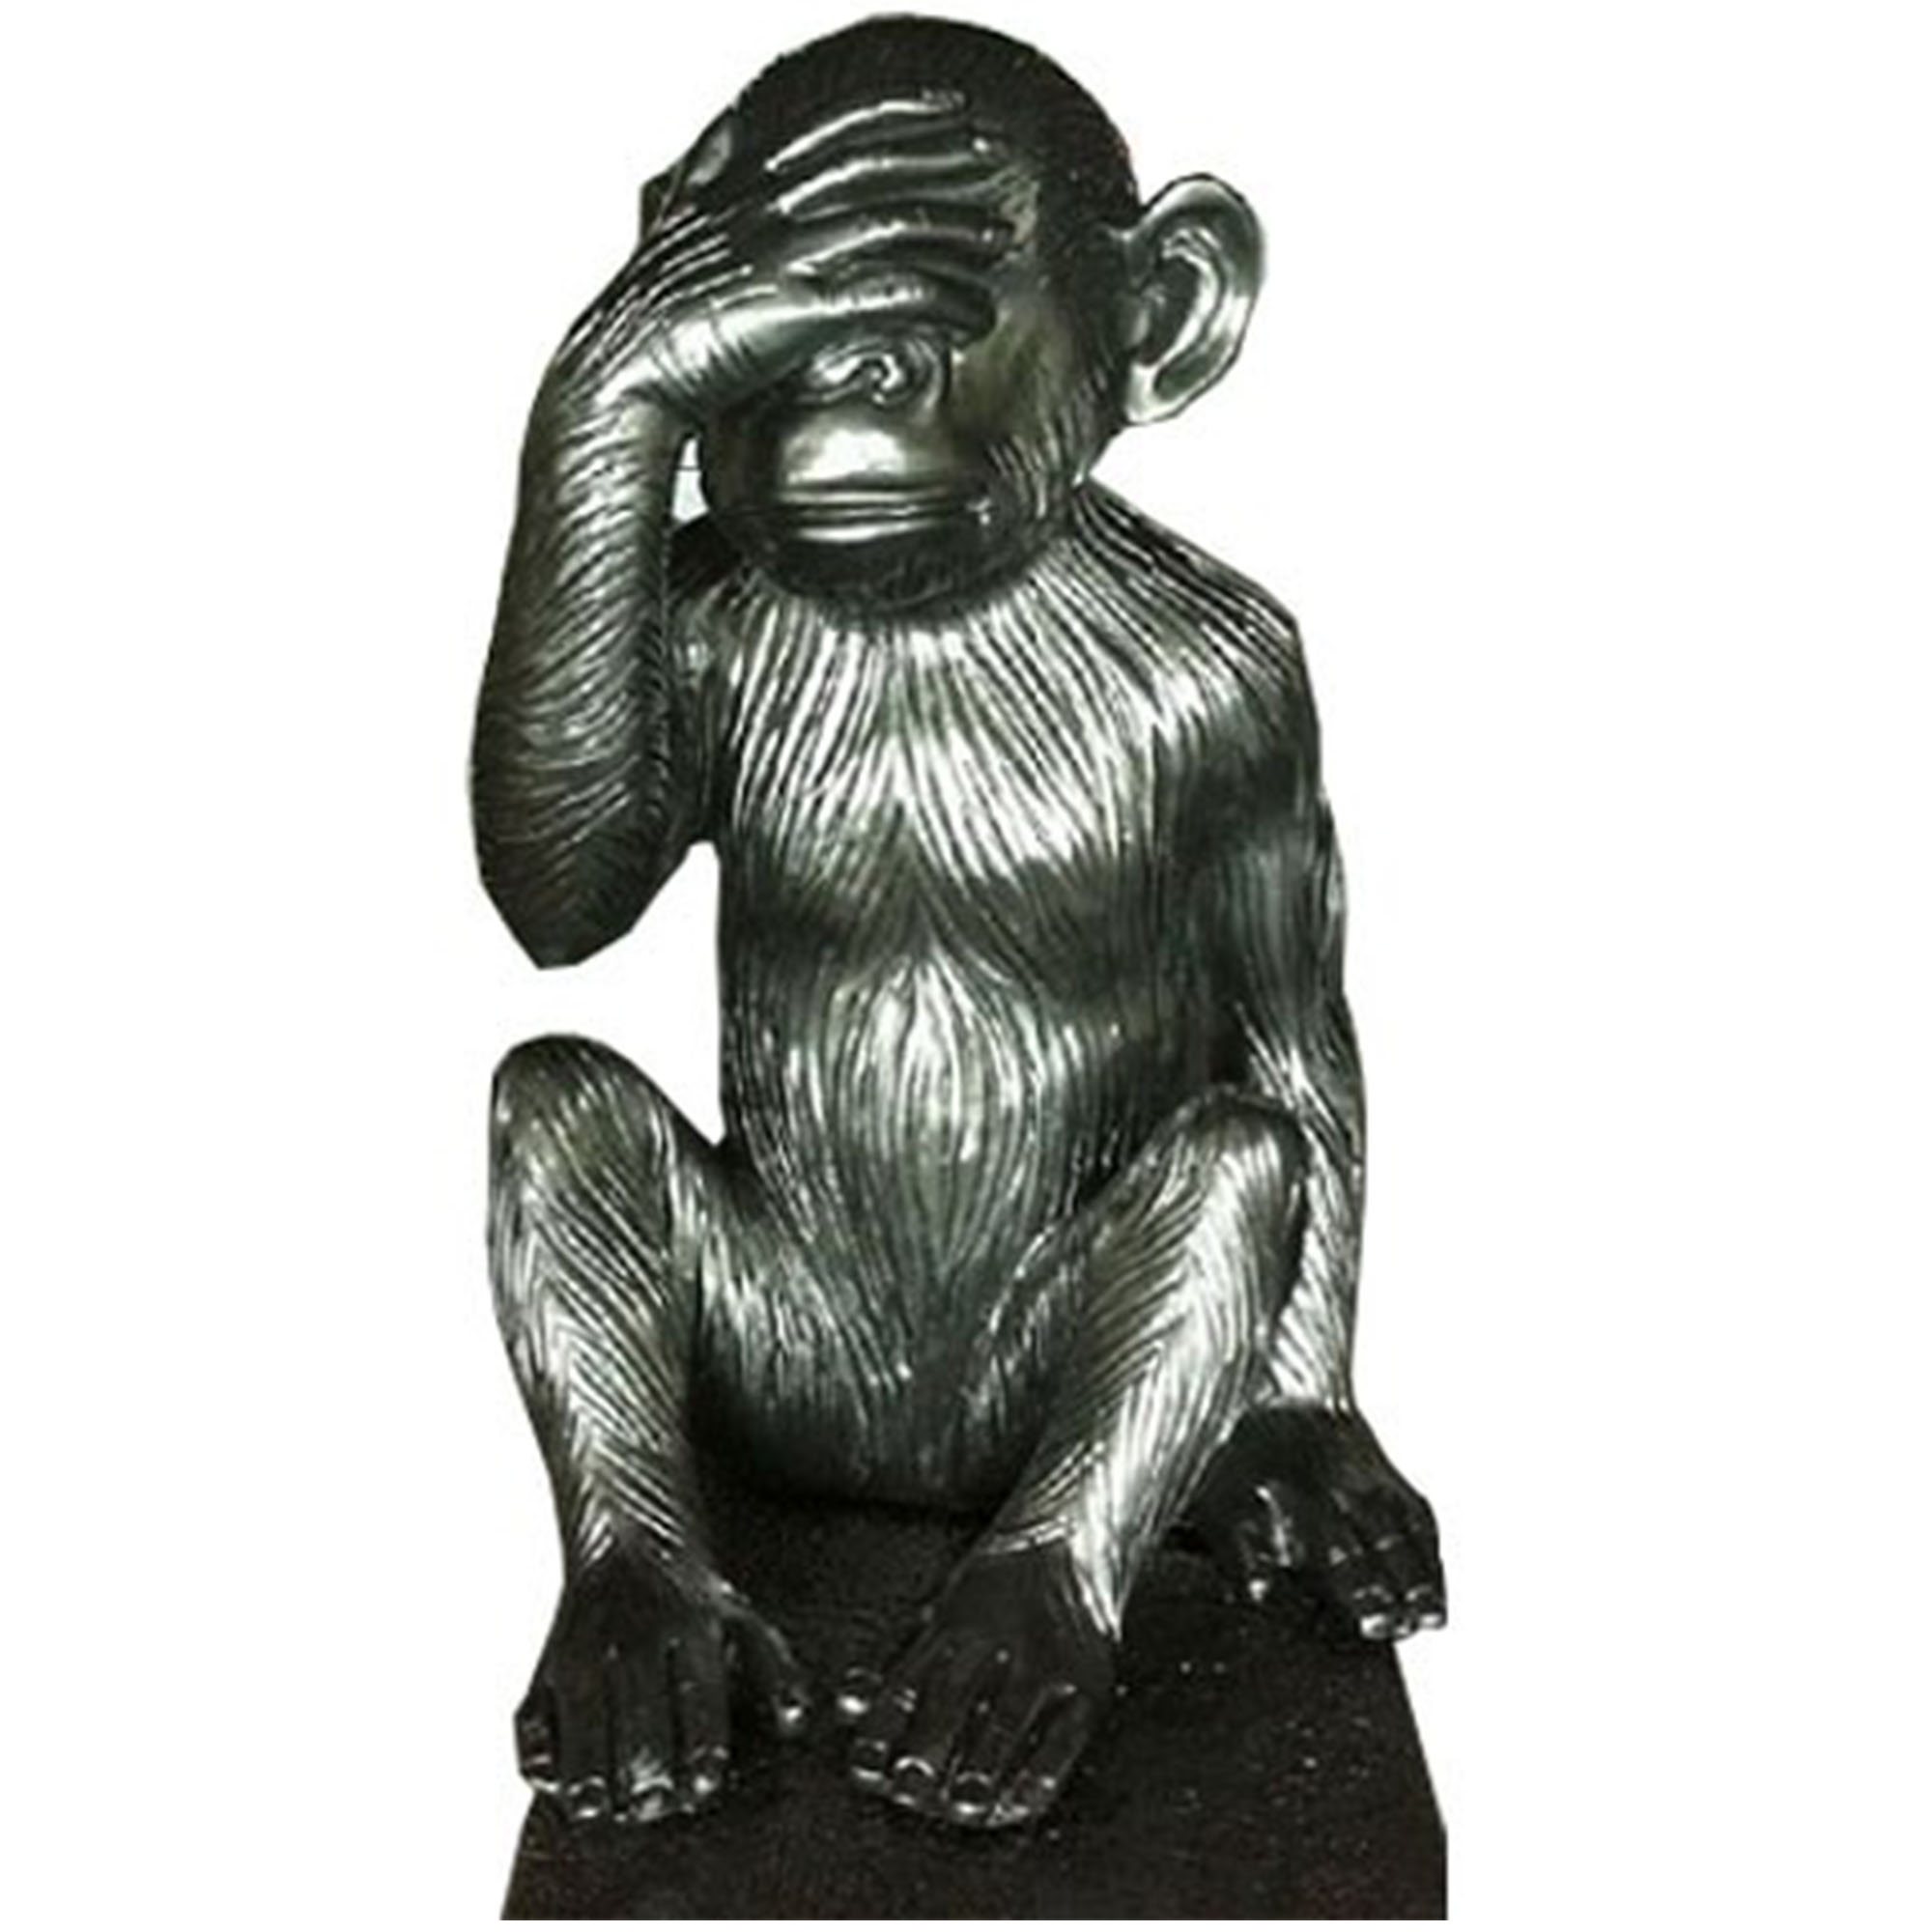 see no evil monkey french furniture from homesdirect 365 uk. Black Bedroom Furniture Sets. Home Design Ideas